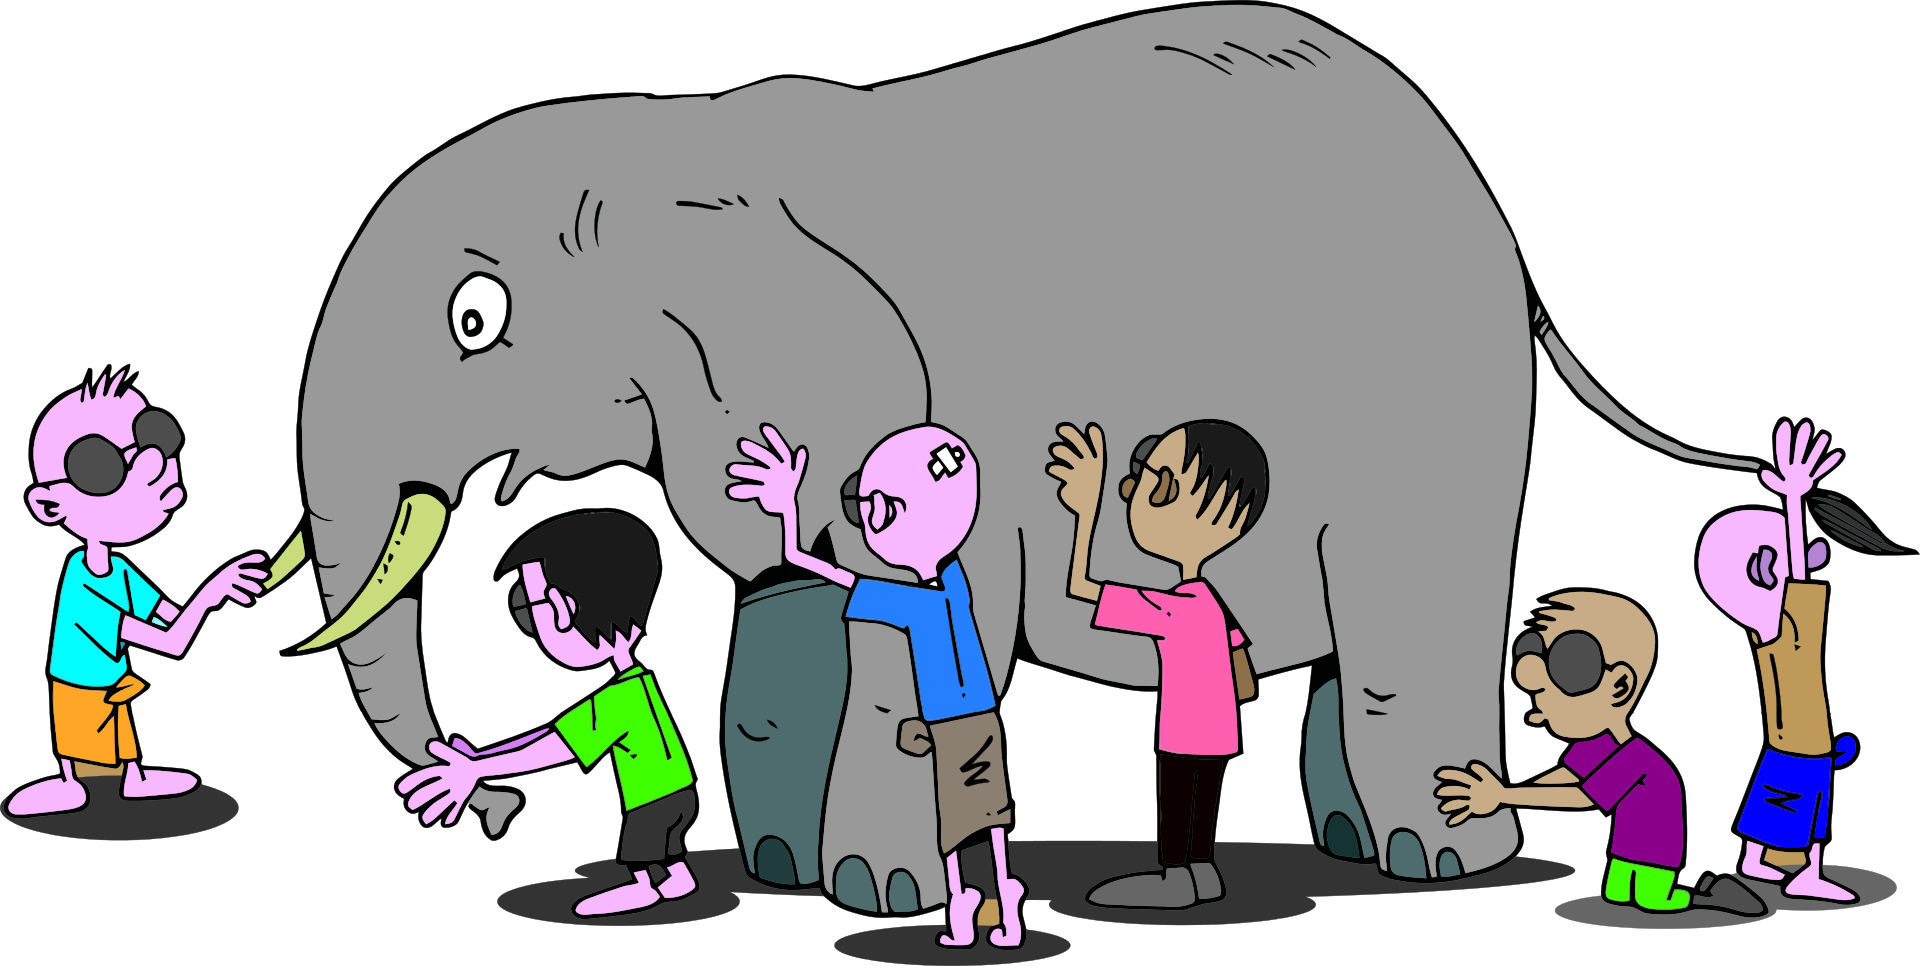 6 blind people image with elephant